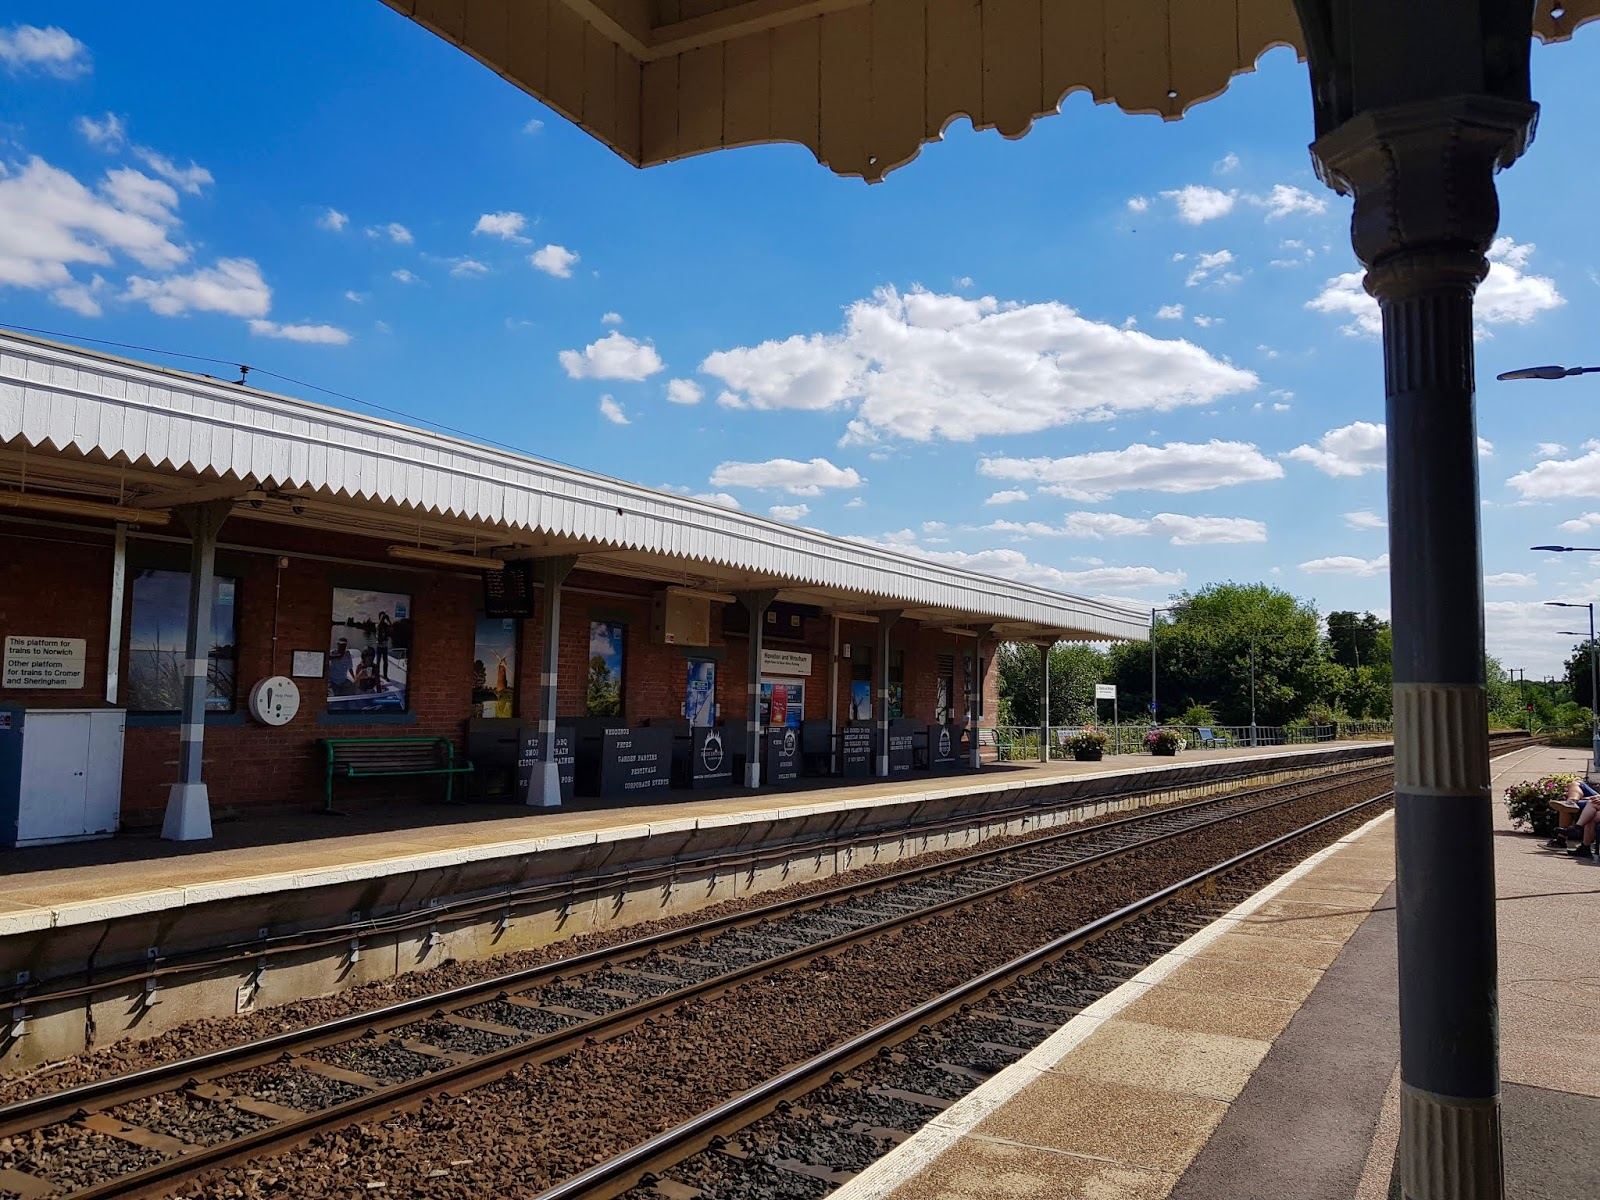 train station platform with blue sky behind